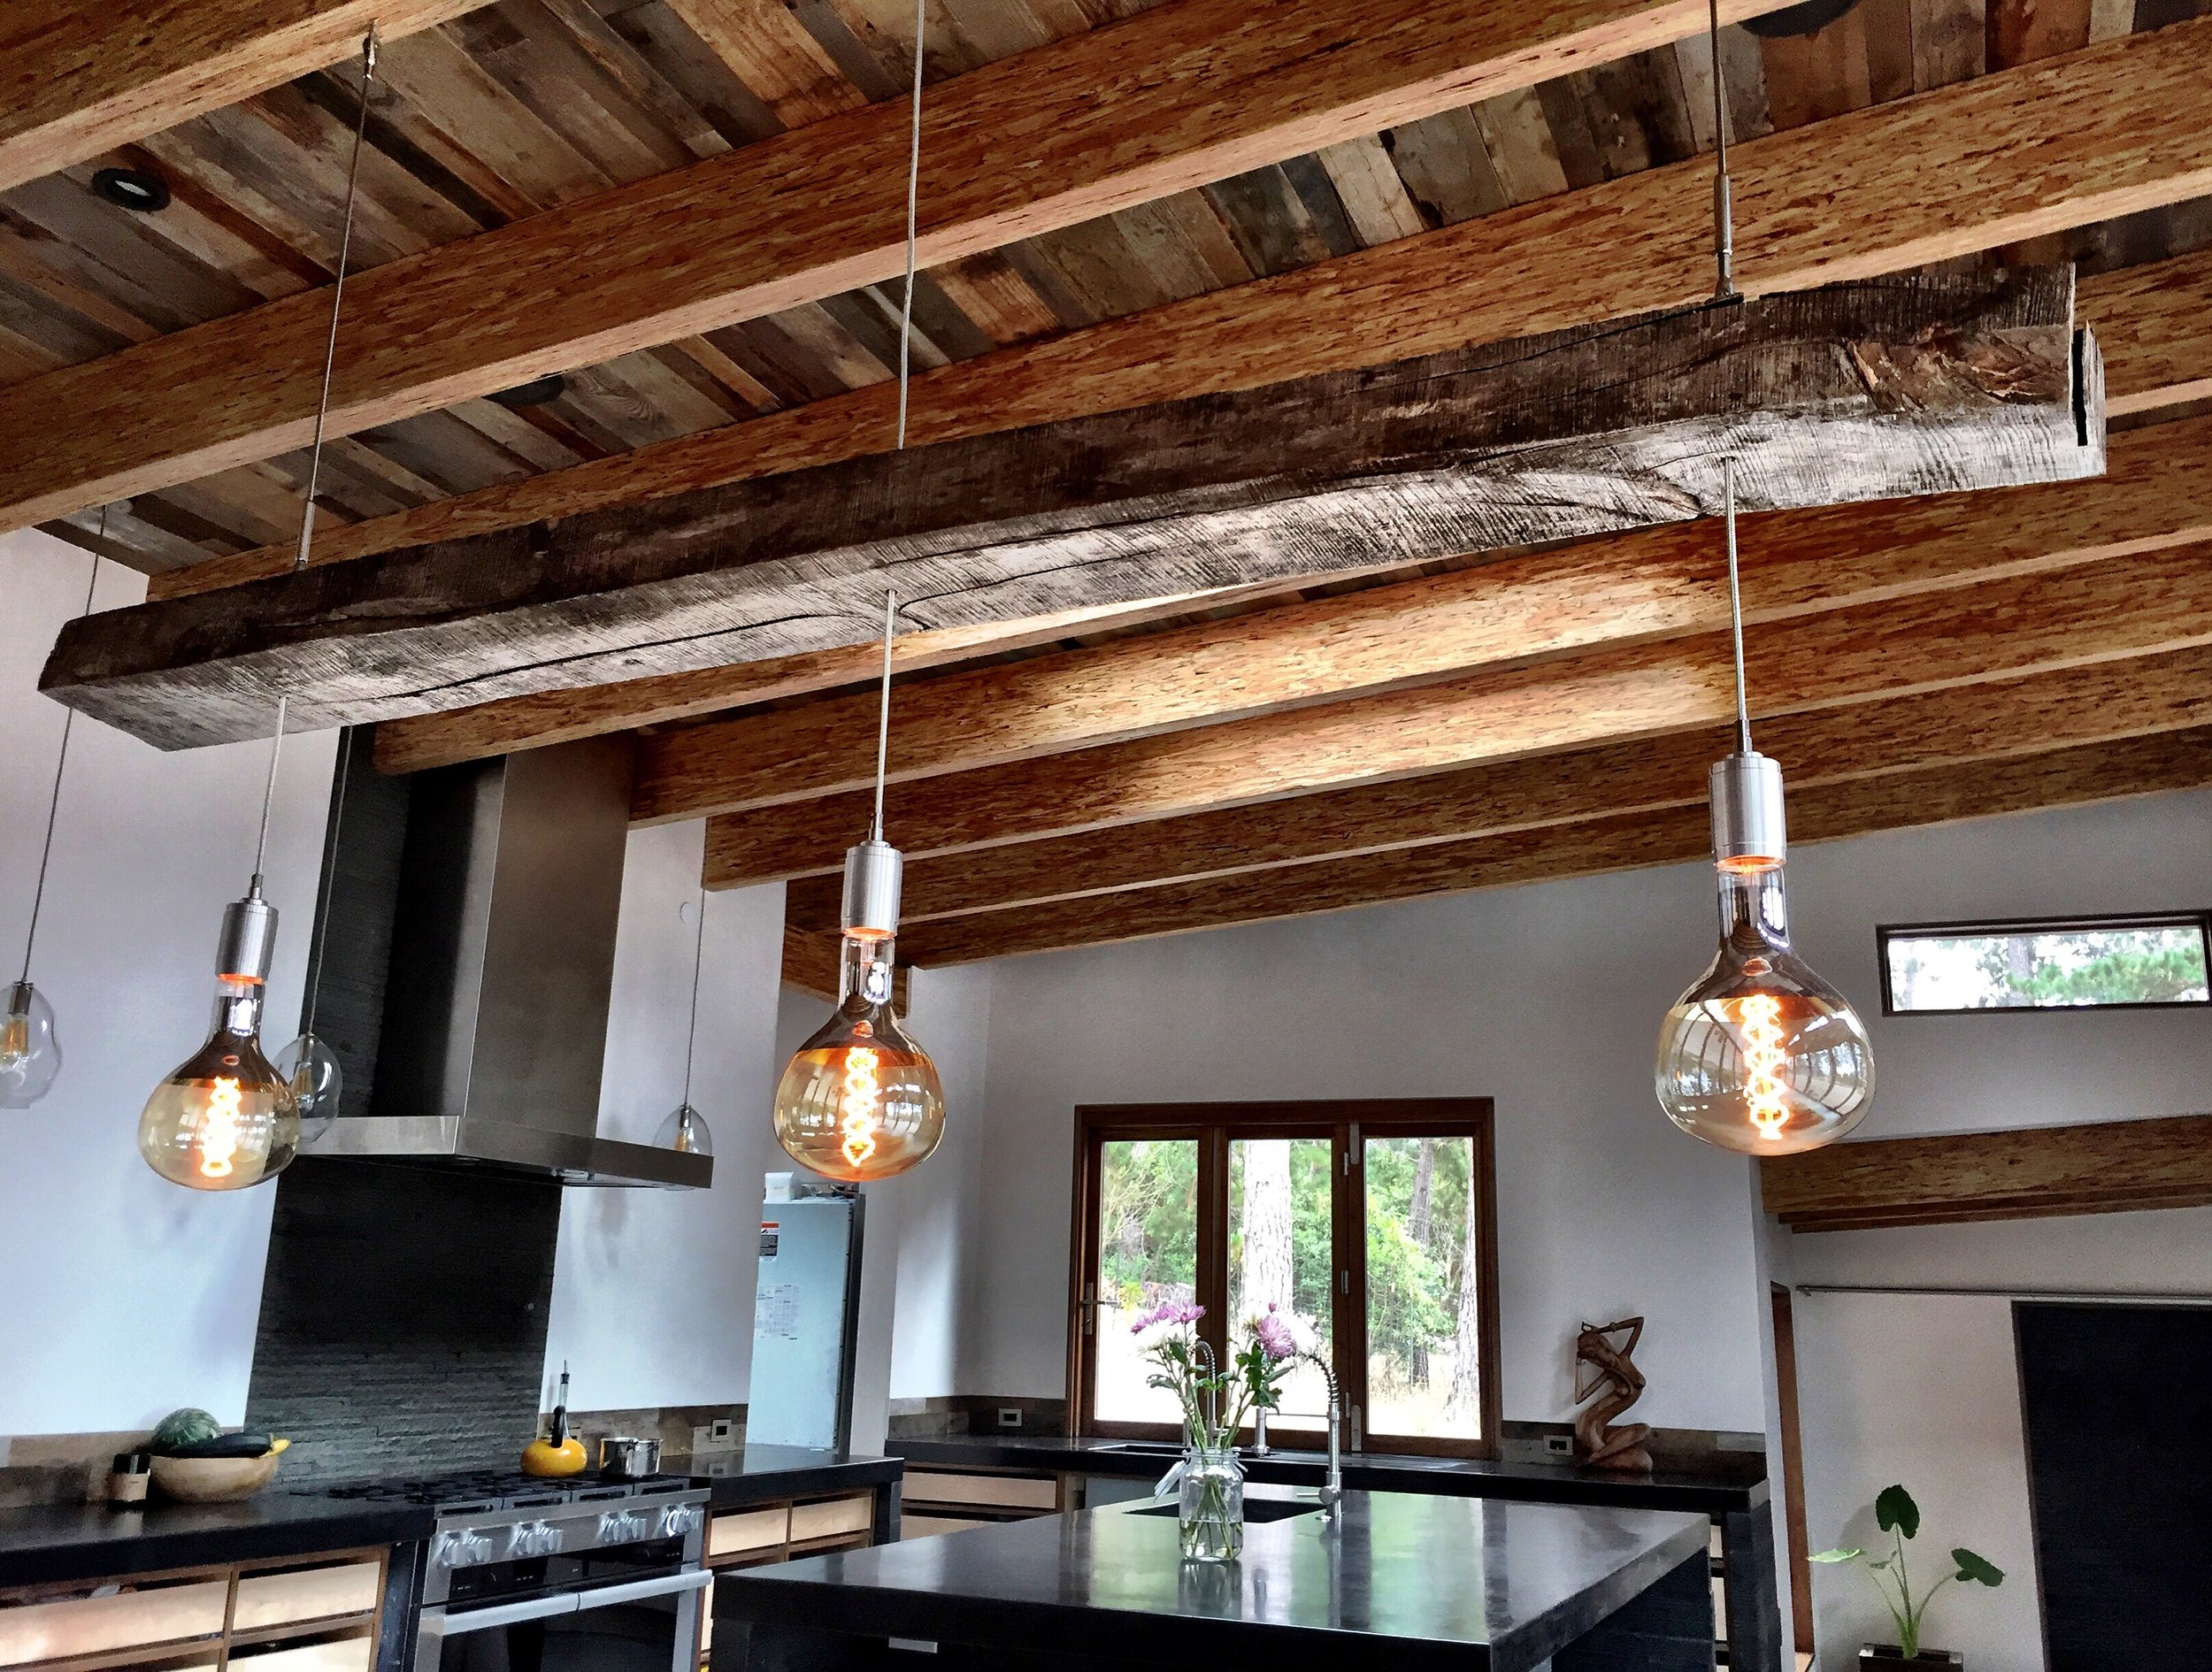 The ceilings of the Carmel HIghlands house are all barn wood and PSL beams. I made the dining room table light. Old growth chainsaw milled 60 year old tanbark oak beam I got off our friend's property in Big Sur, custom mogul sockets by @industriallightworks, huge mogul Edison bulbs, and stainless steel cables and turn buckles.